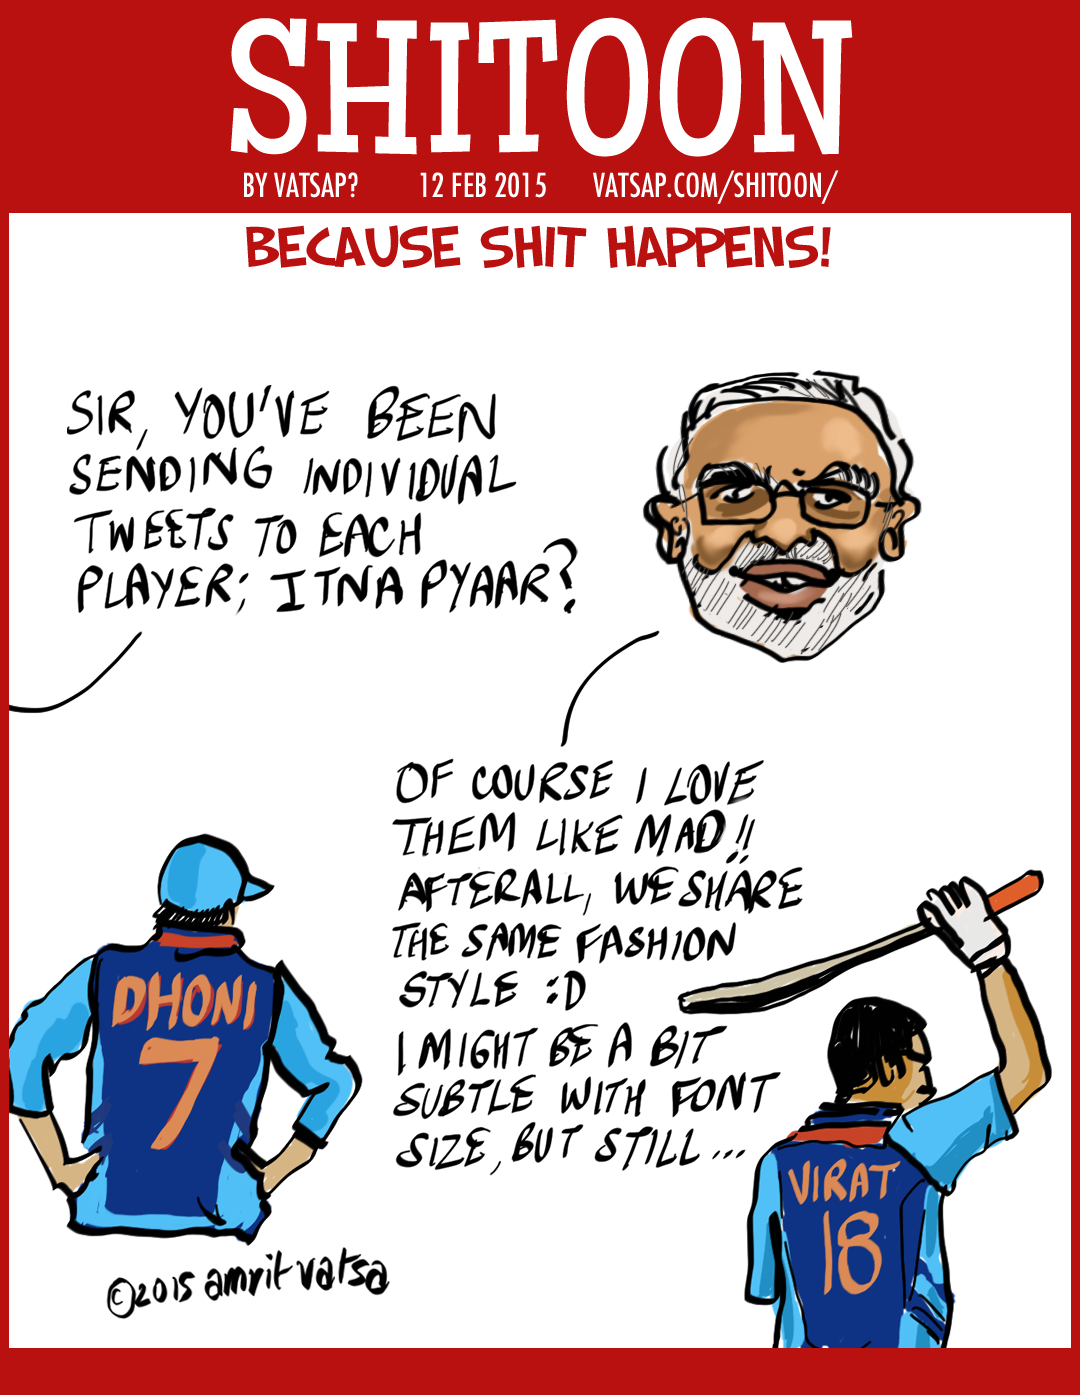 namo-sends-tweets-to-all-players